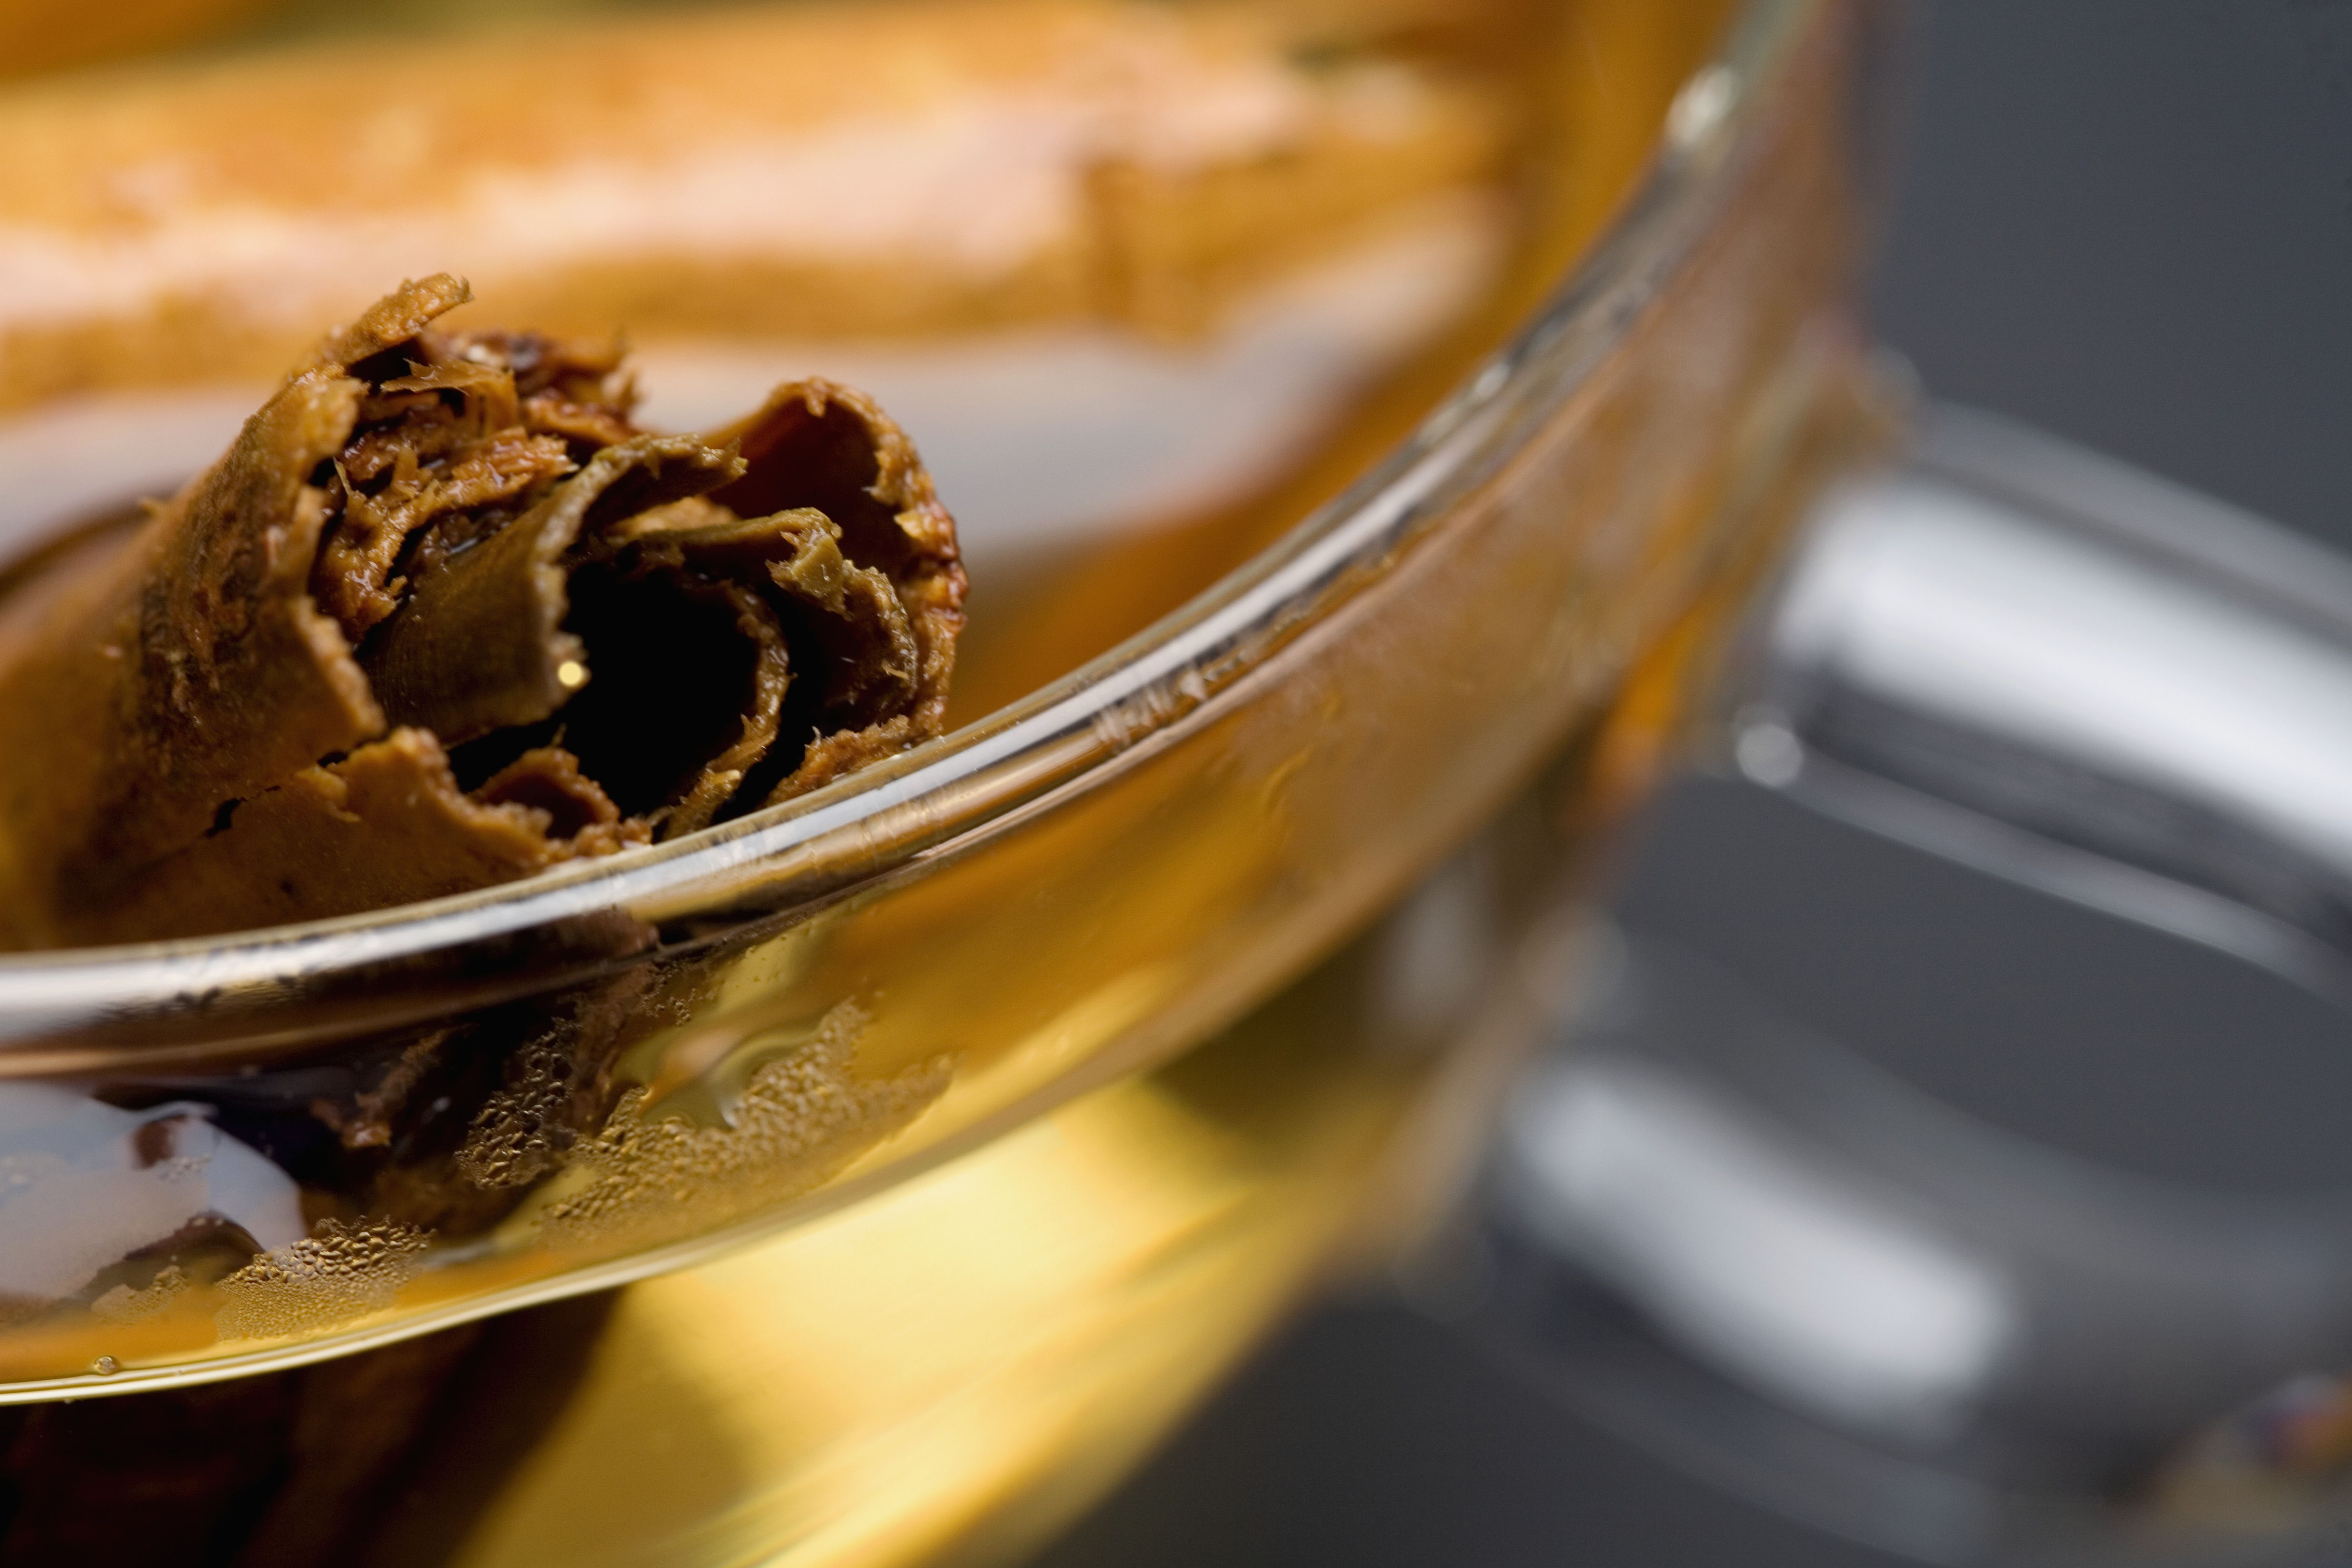 Close-up of a cinnamon stick in a bowl of cider